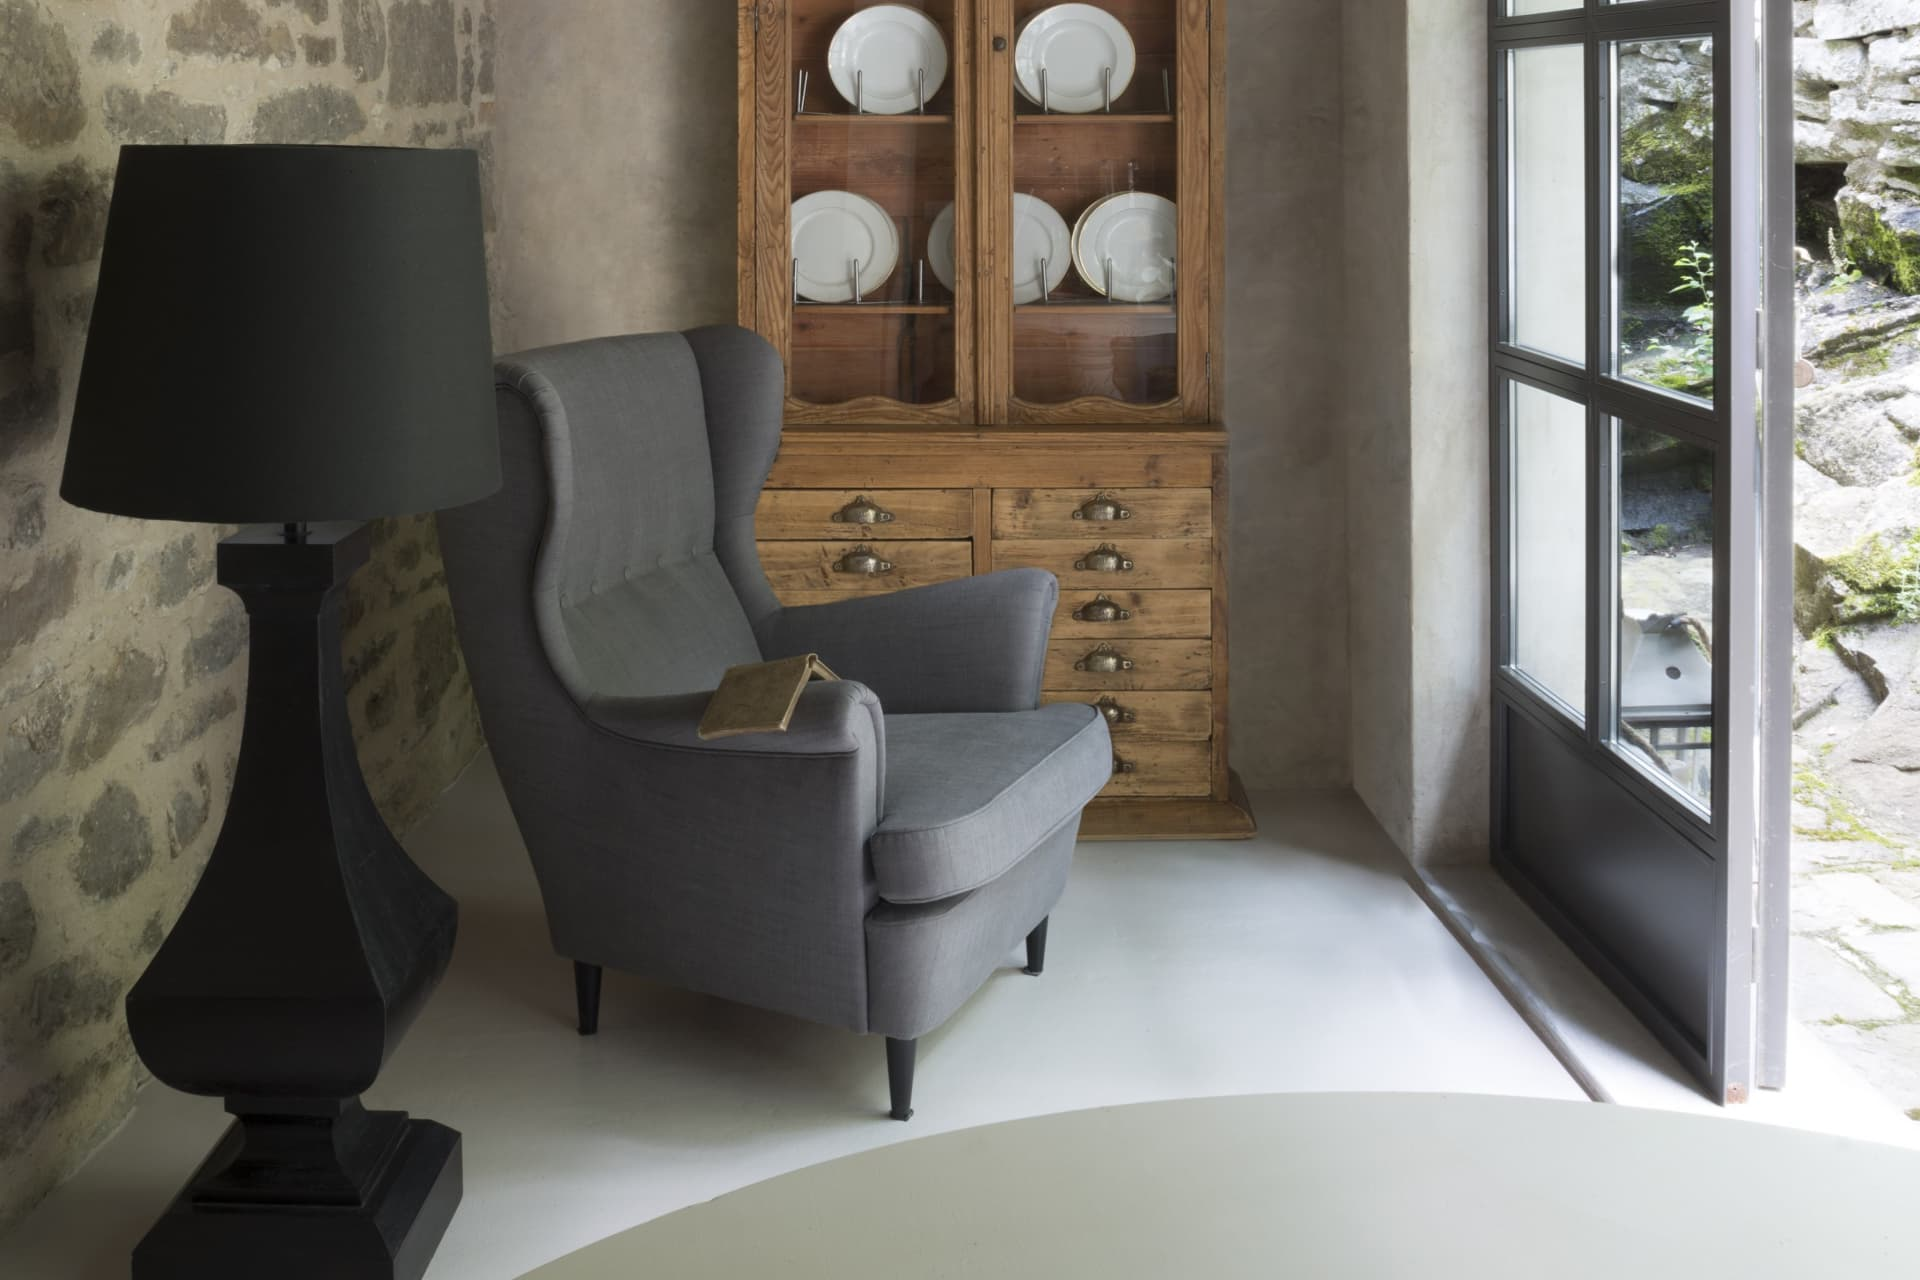 The corner of the limonaia, with an old pharmacy cabinet used as a sideboard. The gray fabric armchair is of local craftsmanship. The floor is resin-treated.